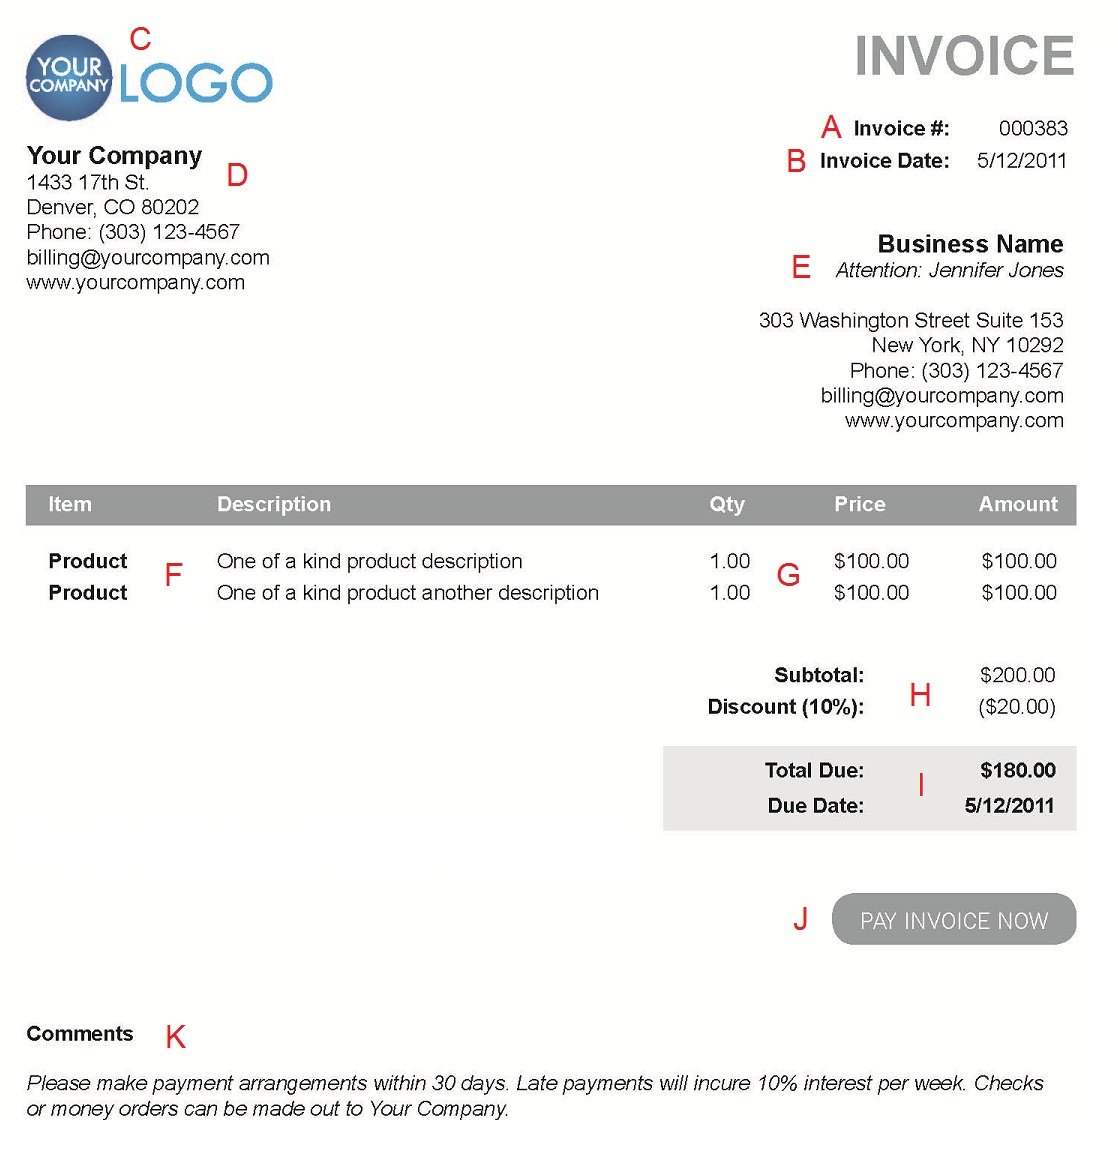 Atvingus  Outstanding The  Different Sections Of An Electronic Payment Invoice With Interesting A  With Breathtaking Car Invoice Also Zoho Invoices In Addition Sample Invoice Pdf And Example Invoice As Well As Aynax Com Free Printable Invoice Additionally Billing Invoice From Paysimplecom With Atvingus  Interesting The  Different Sections Of An Electronic Payment Invoice With Breathtaking A  And Outstanding Car Invoice Also Zoho Invoices In Addition Sample Invoice Pdf From Paysimplecom